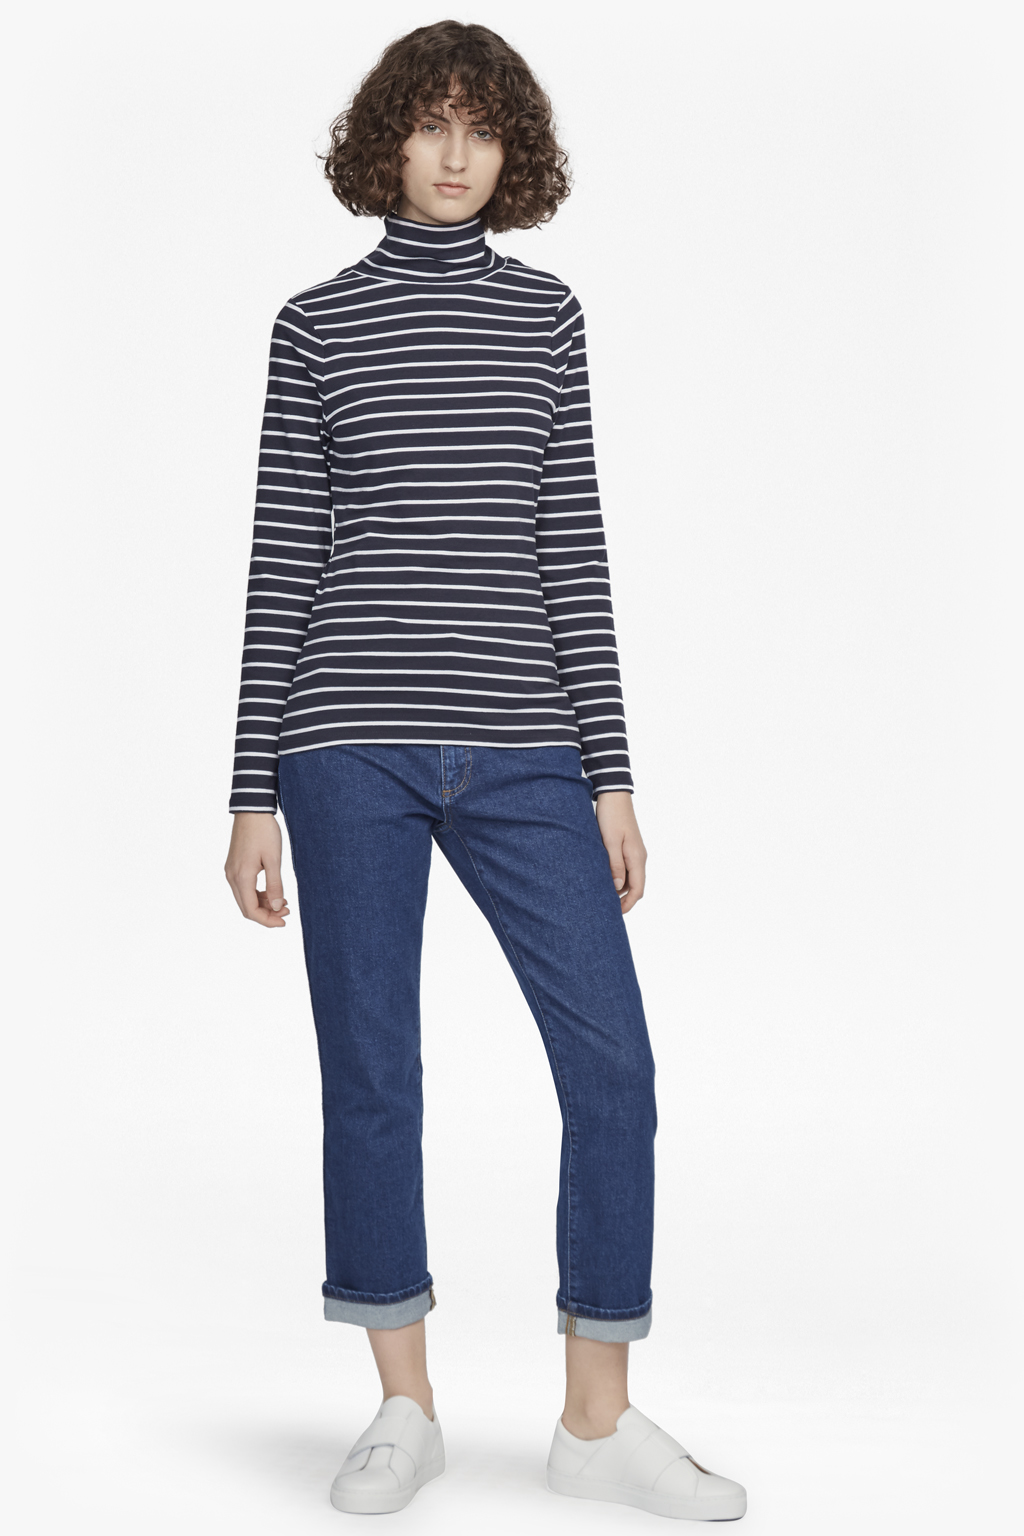 Isla Polo Neck Tim Tim Stripe Top by French Connection